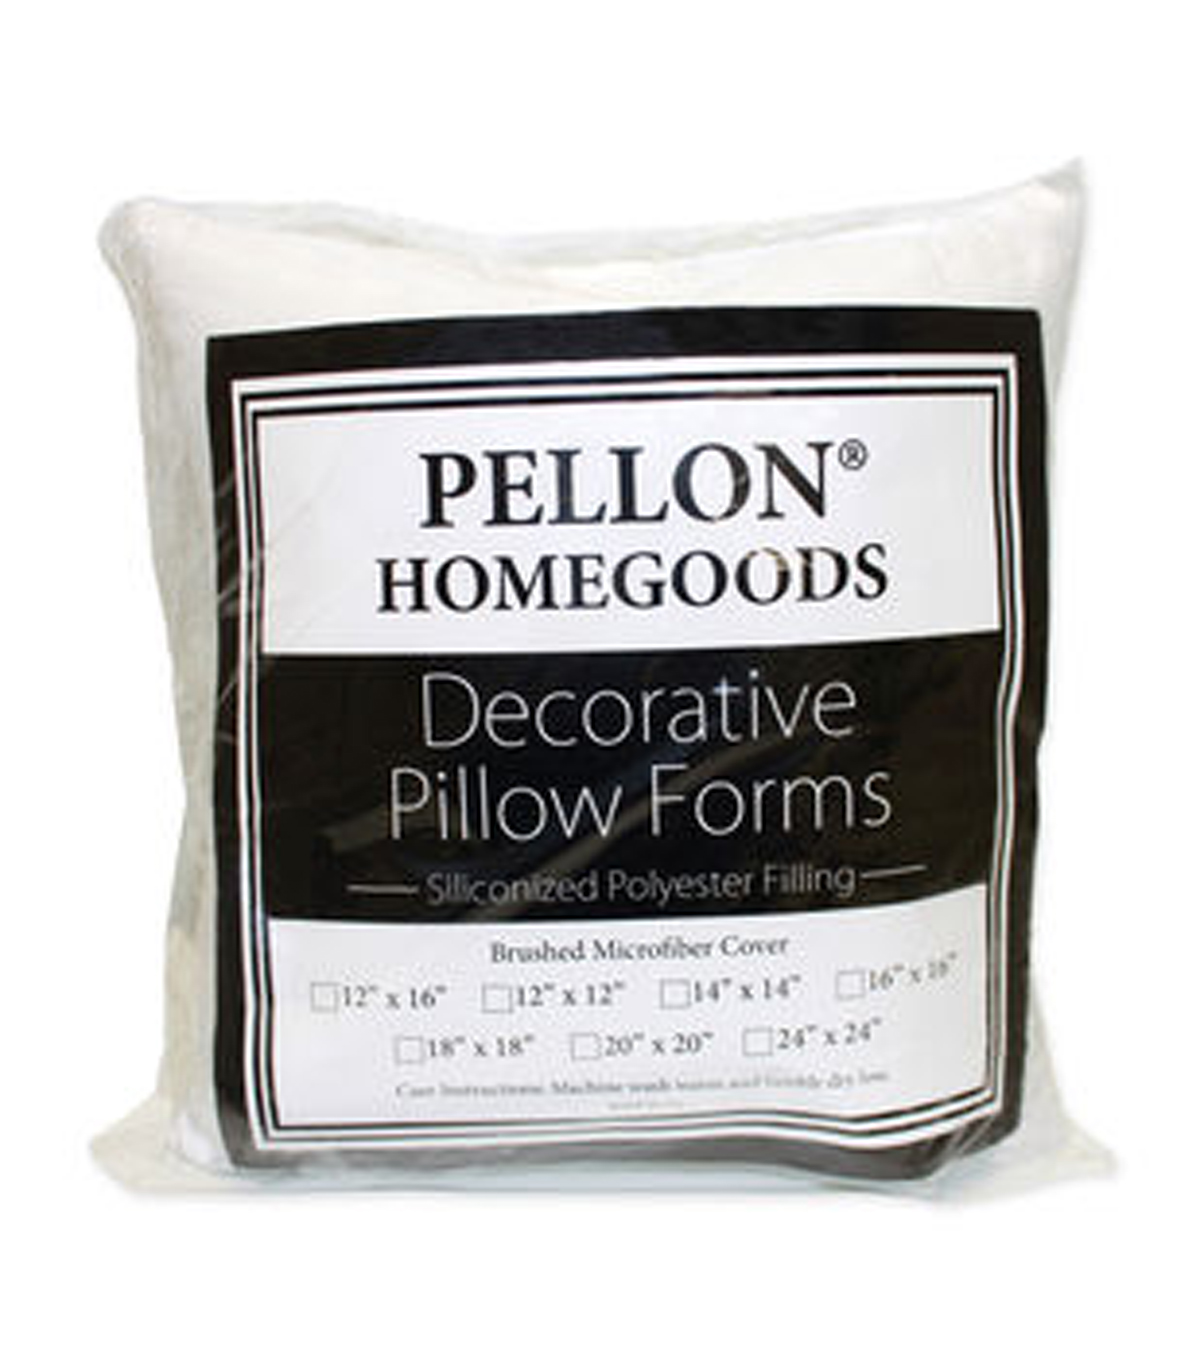 Pellon Decorative 14\u0022 x 14\u0022 Microfiber Pillow Form